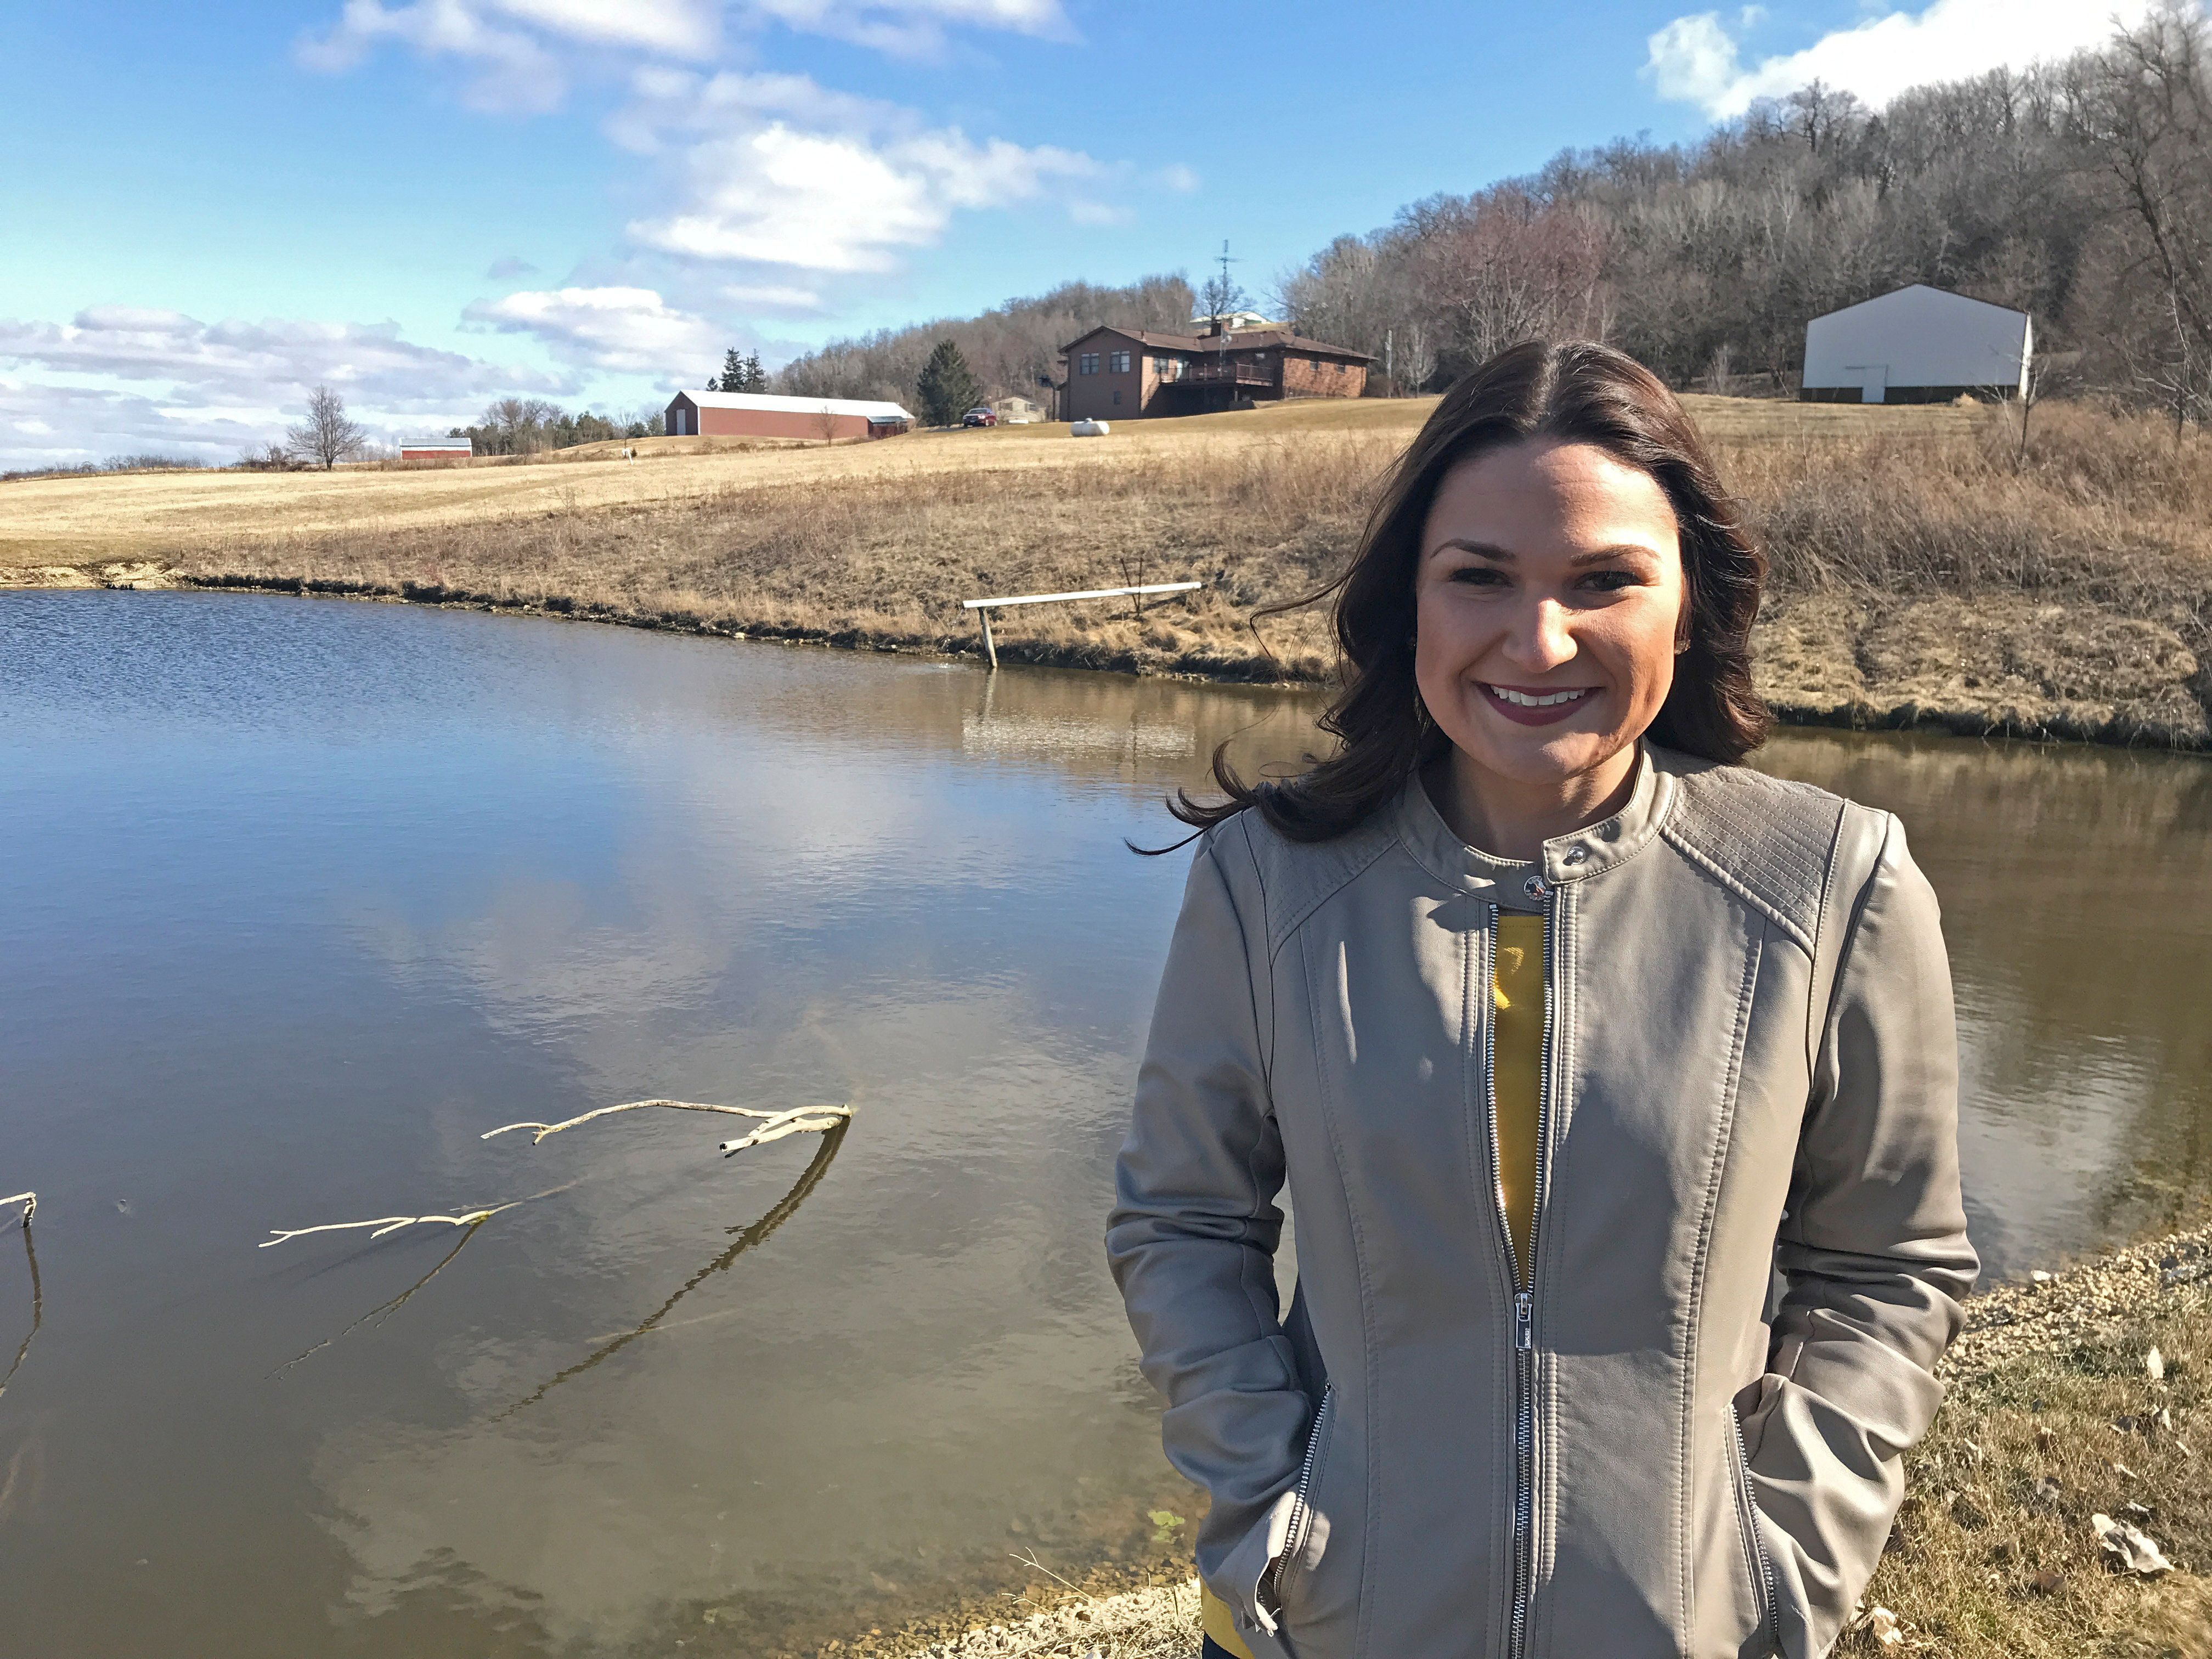 Abby Finkenauer, a Democratic candidate trying to unseat Republican incumbent Rod Blum in Iowa's 1st congressional district, is pictured on the grounds of the house in which she grew up in Sherril, Iowa, U.S. March 31, 2018. Picture taken March 31, 2018. REUTERS/Tim Reid